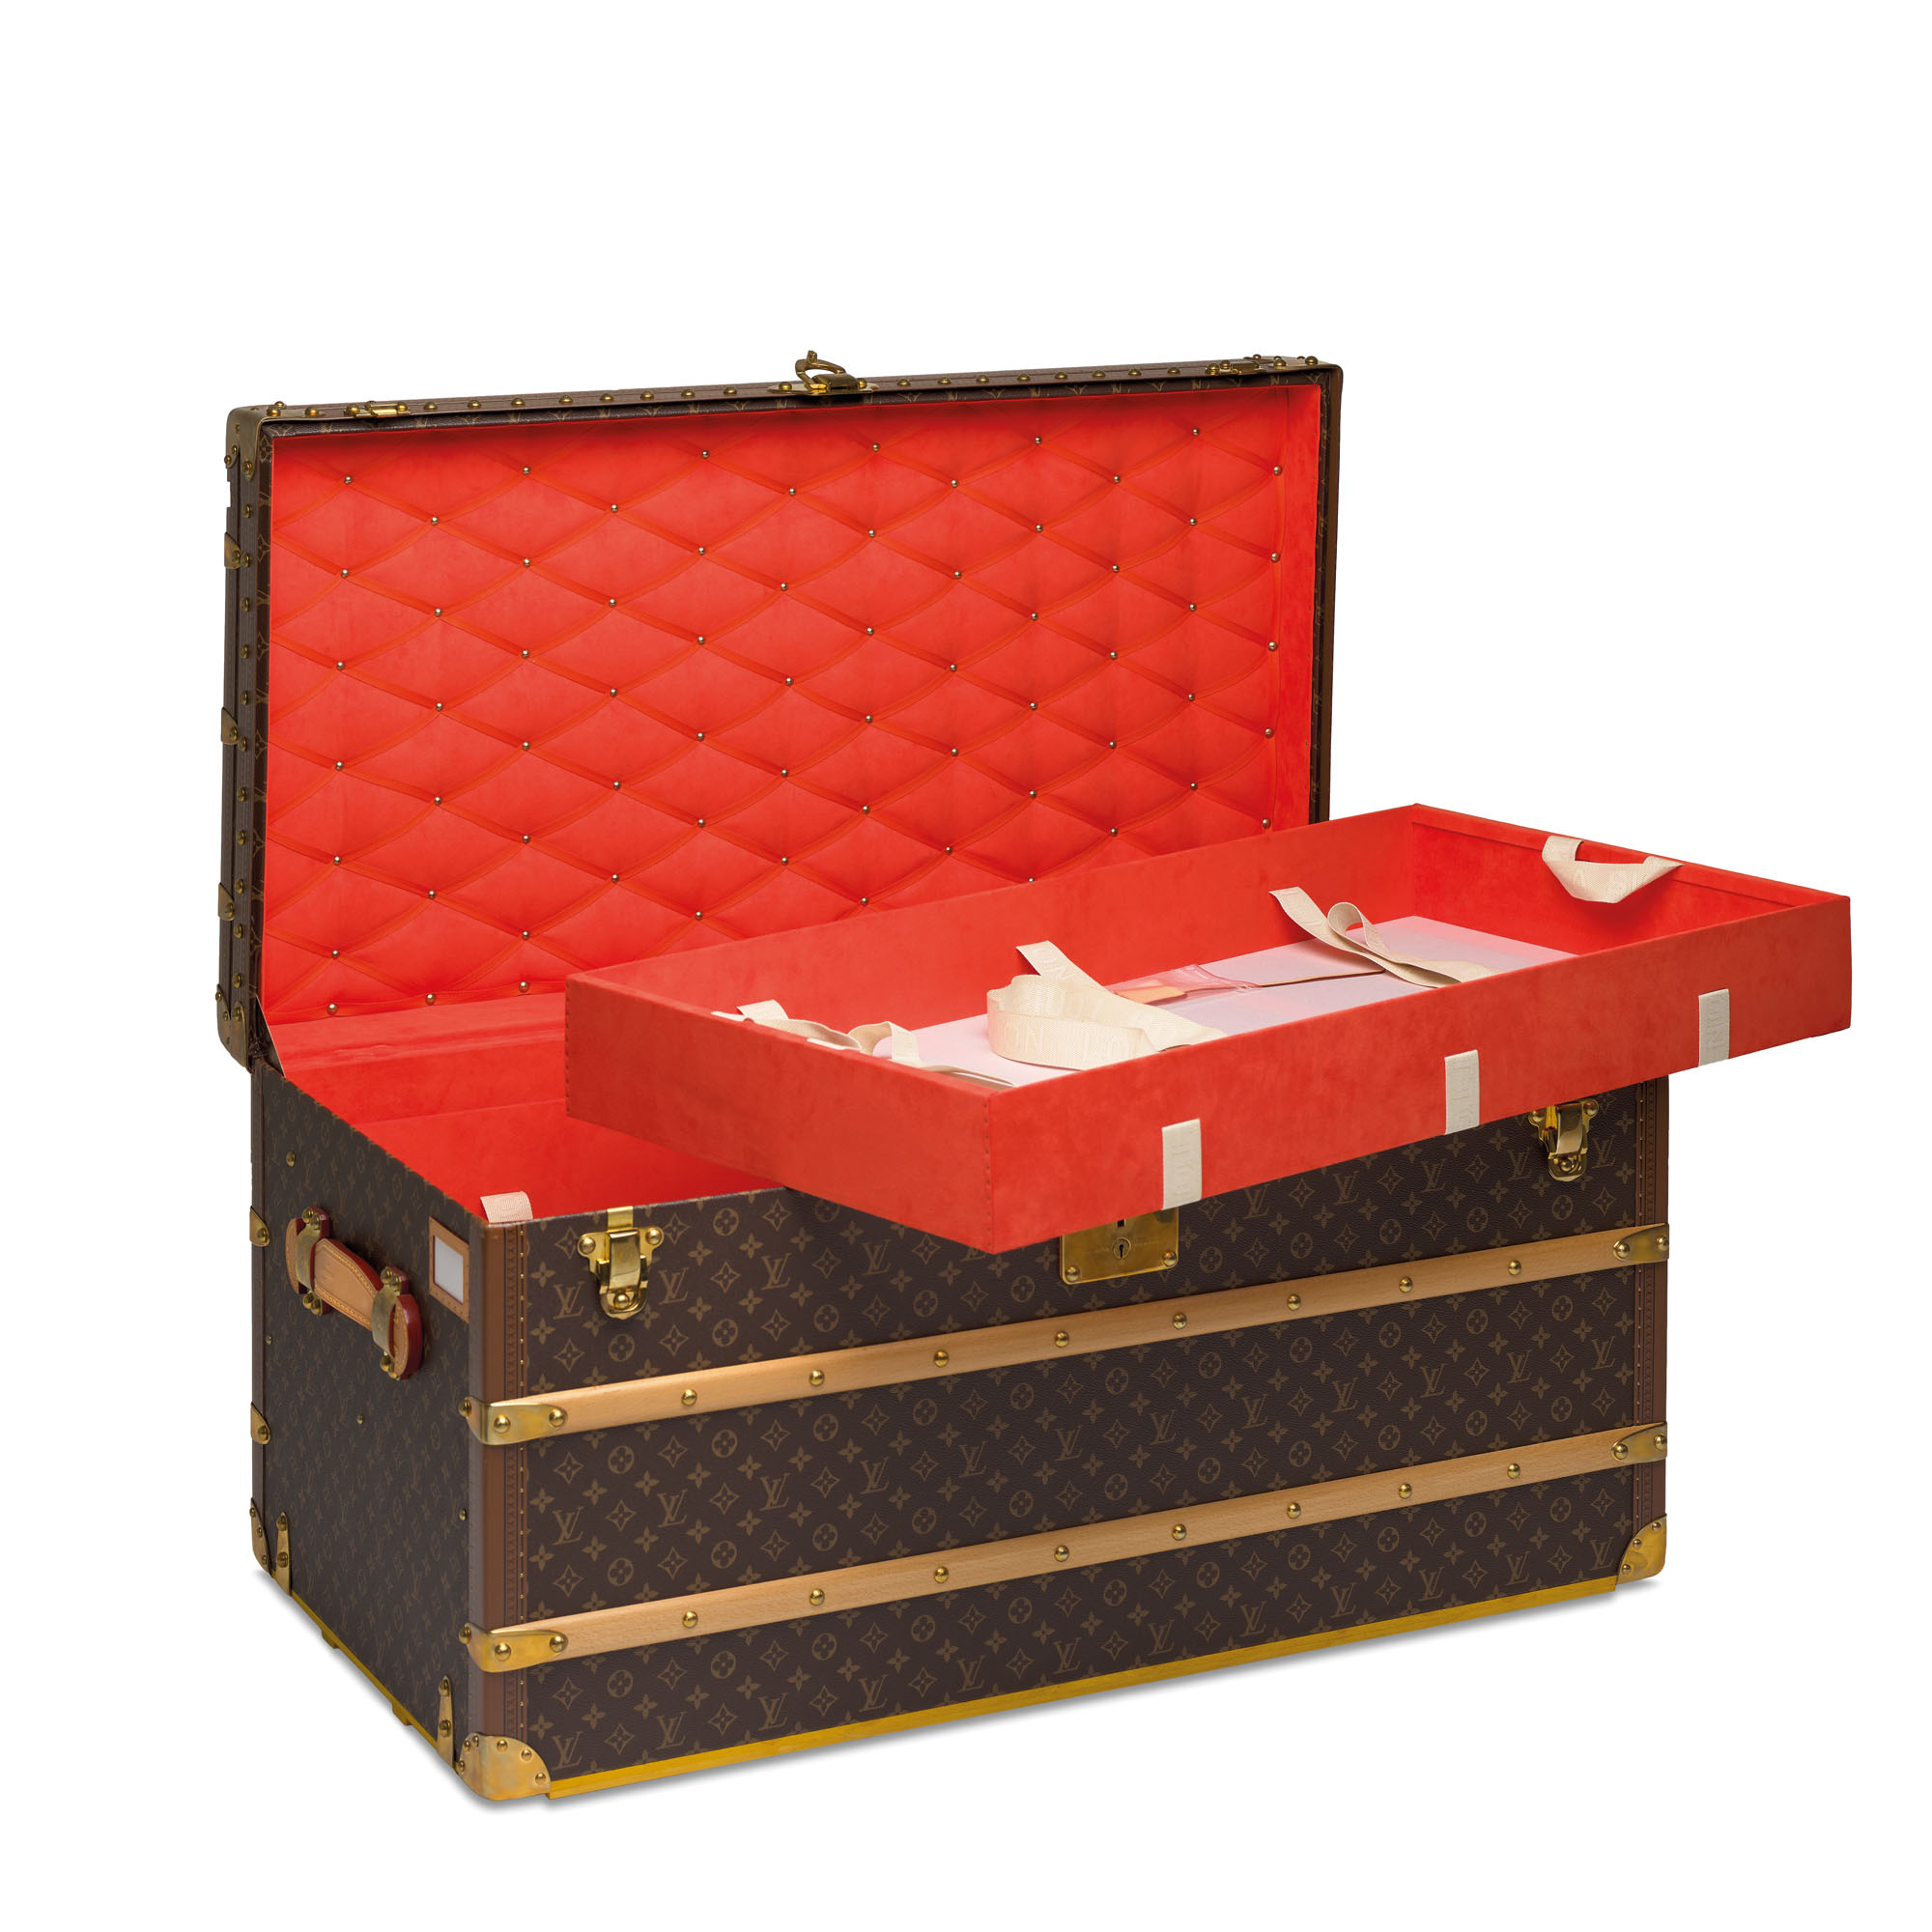 A CUSTOM MONOGRAM MALLE COURRIER LOZINE 100 TRUNK WITH CAPUCINE LINING & BRASS HARDWARE